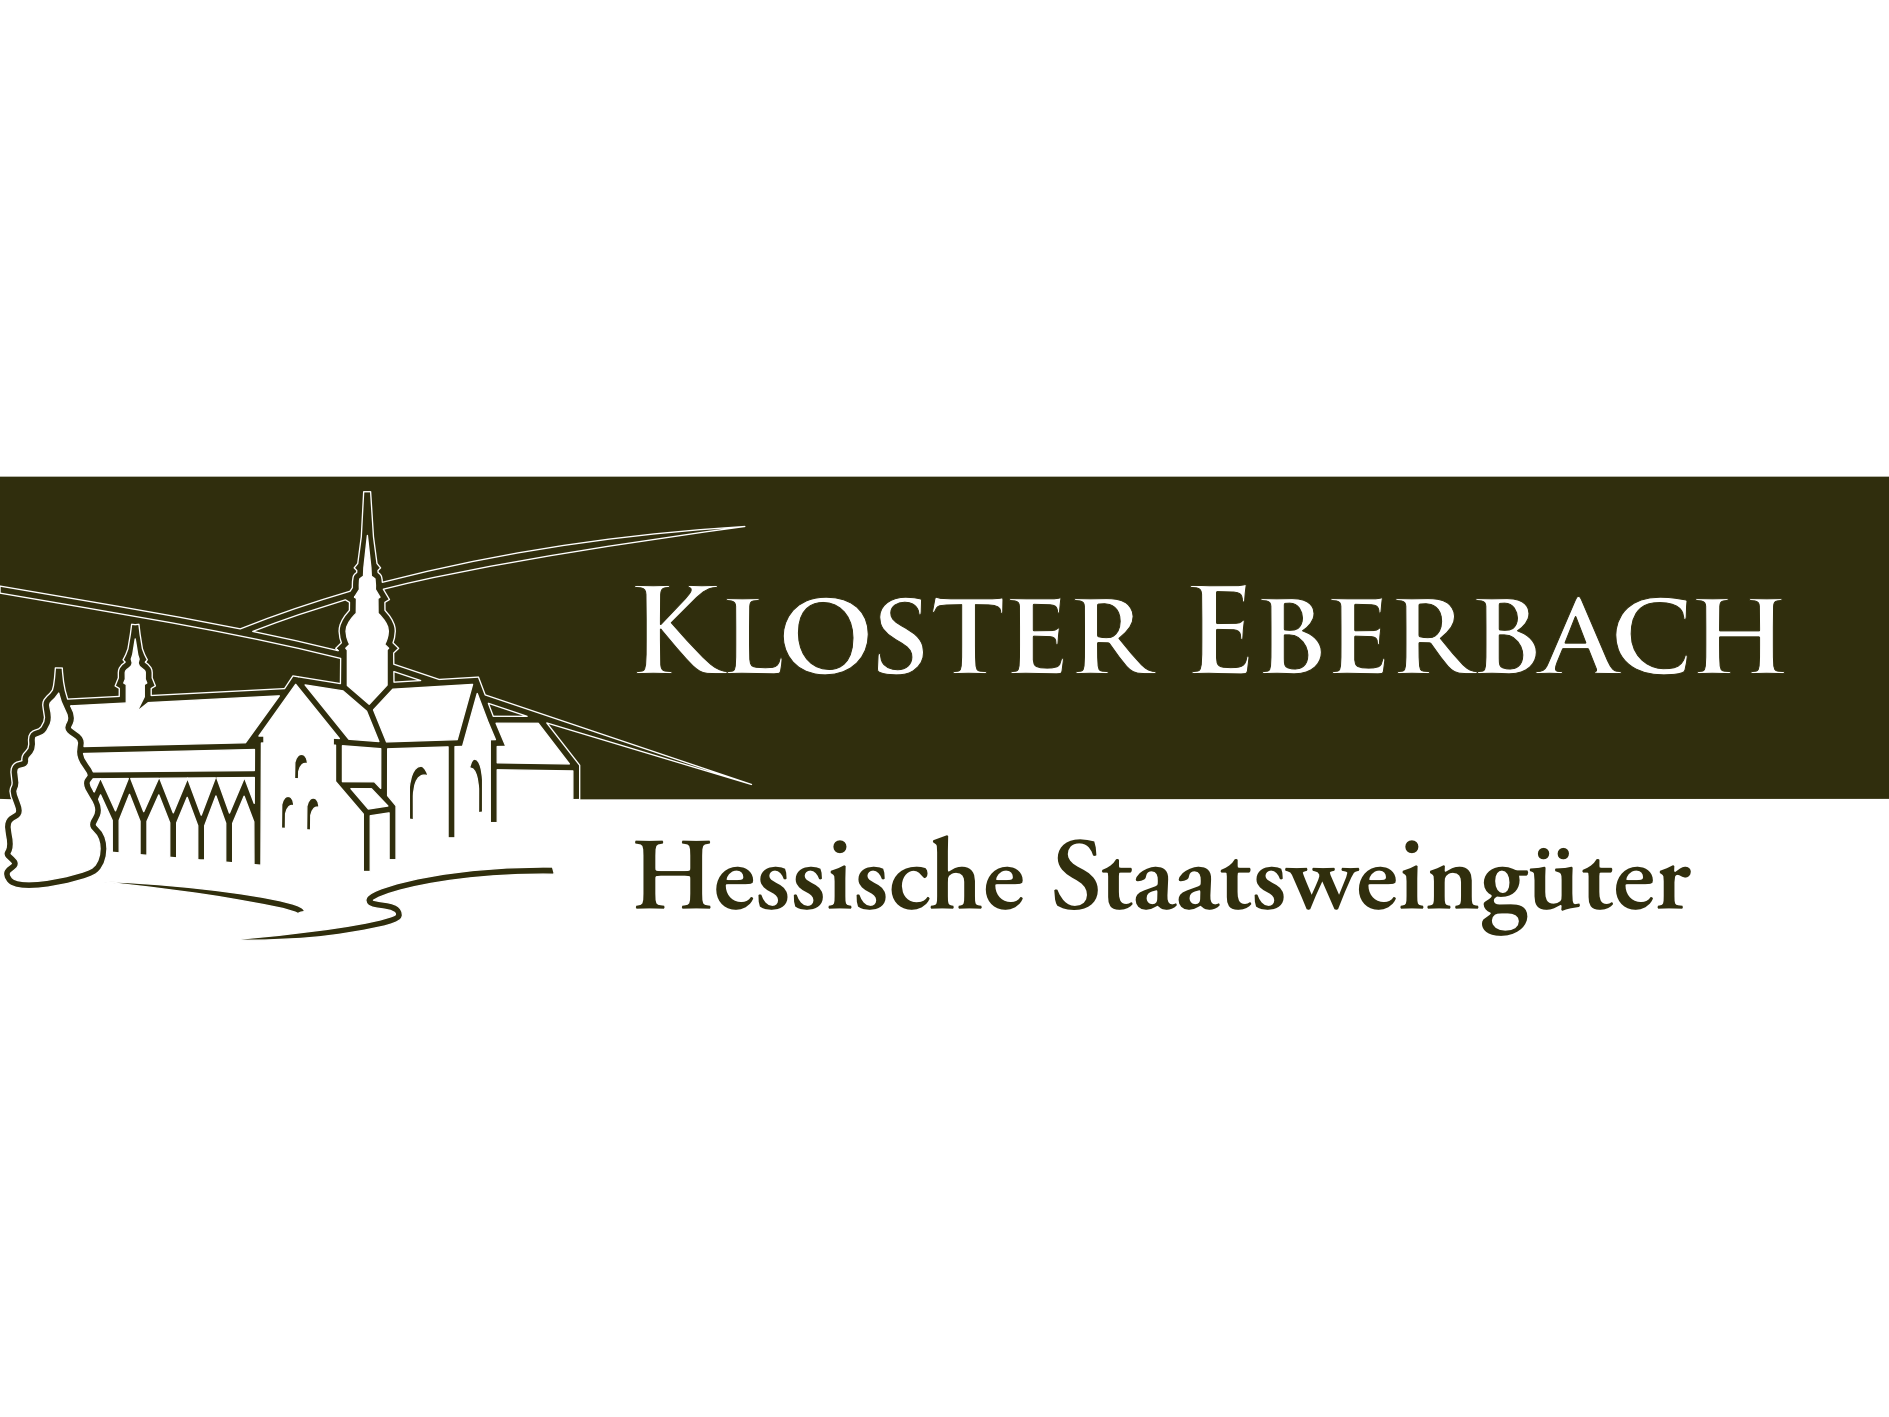 Kloster Eberbach Logo PNG .png